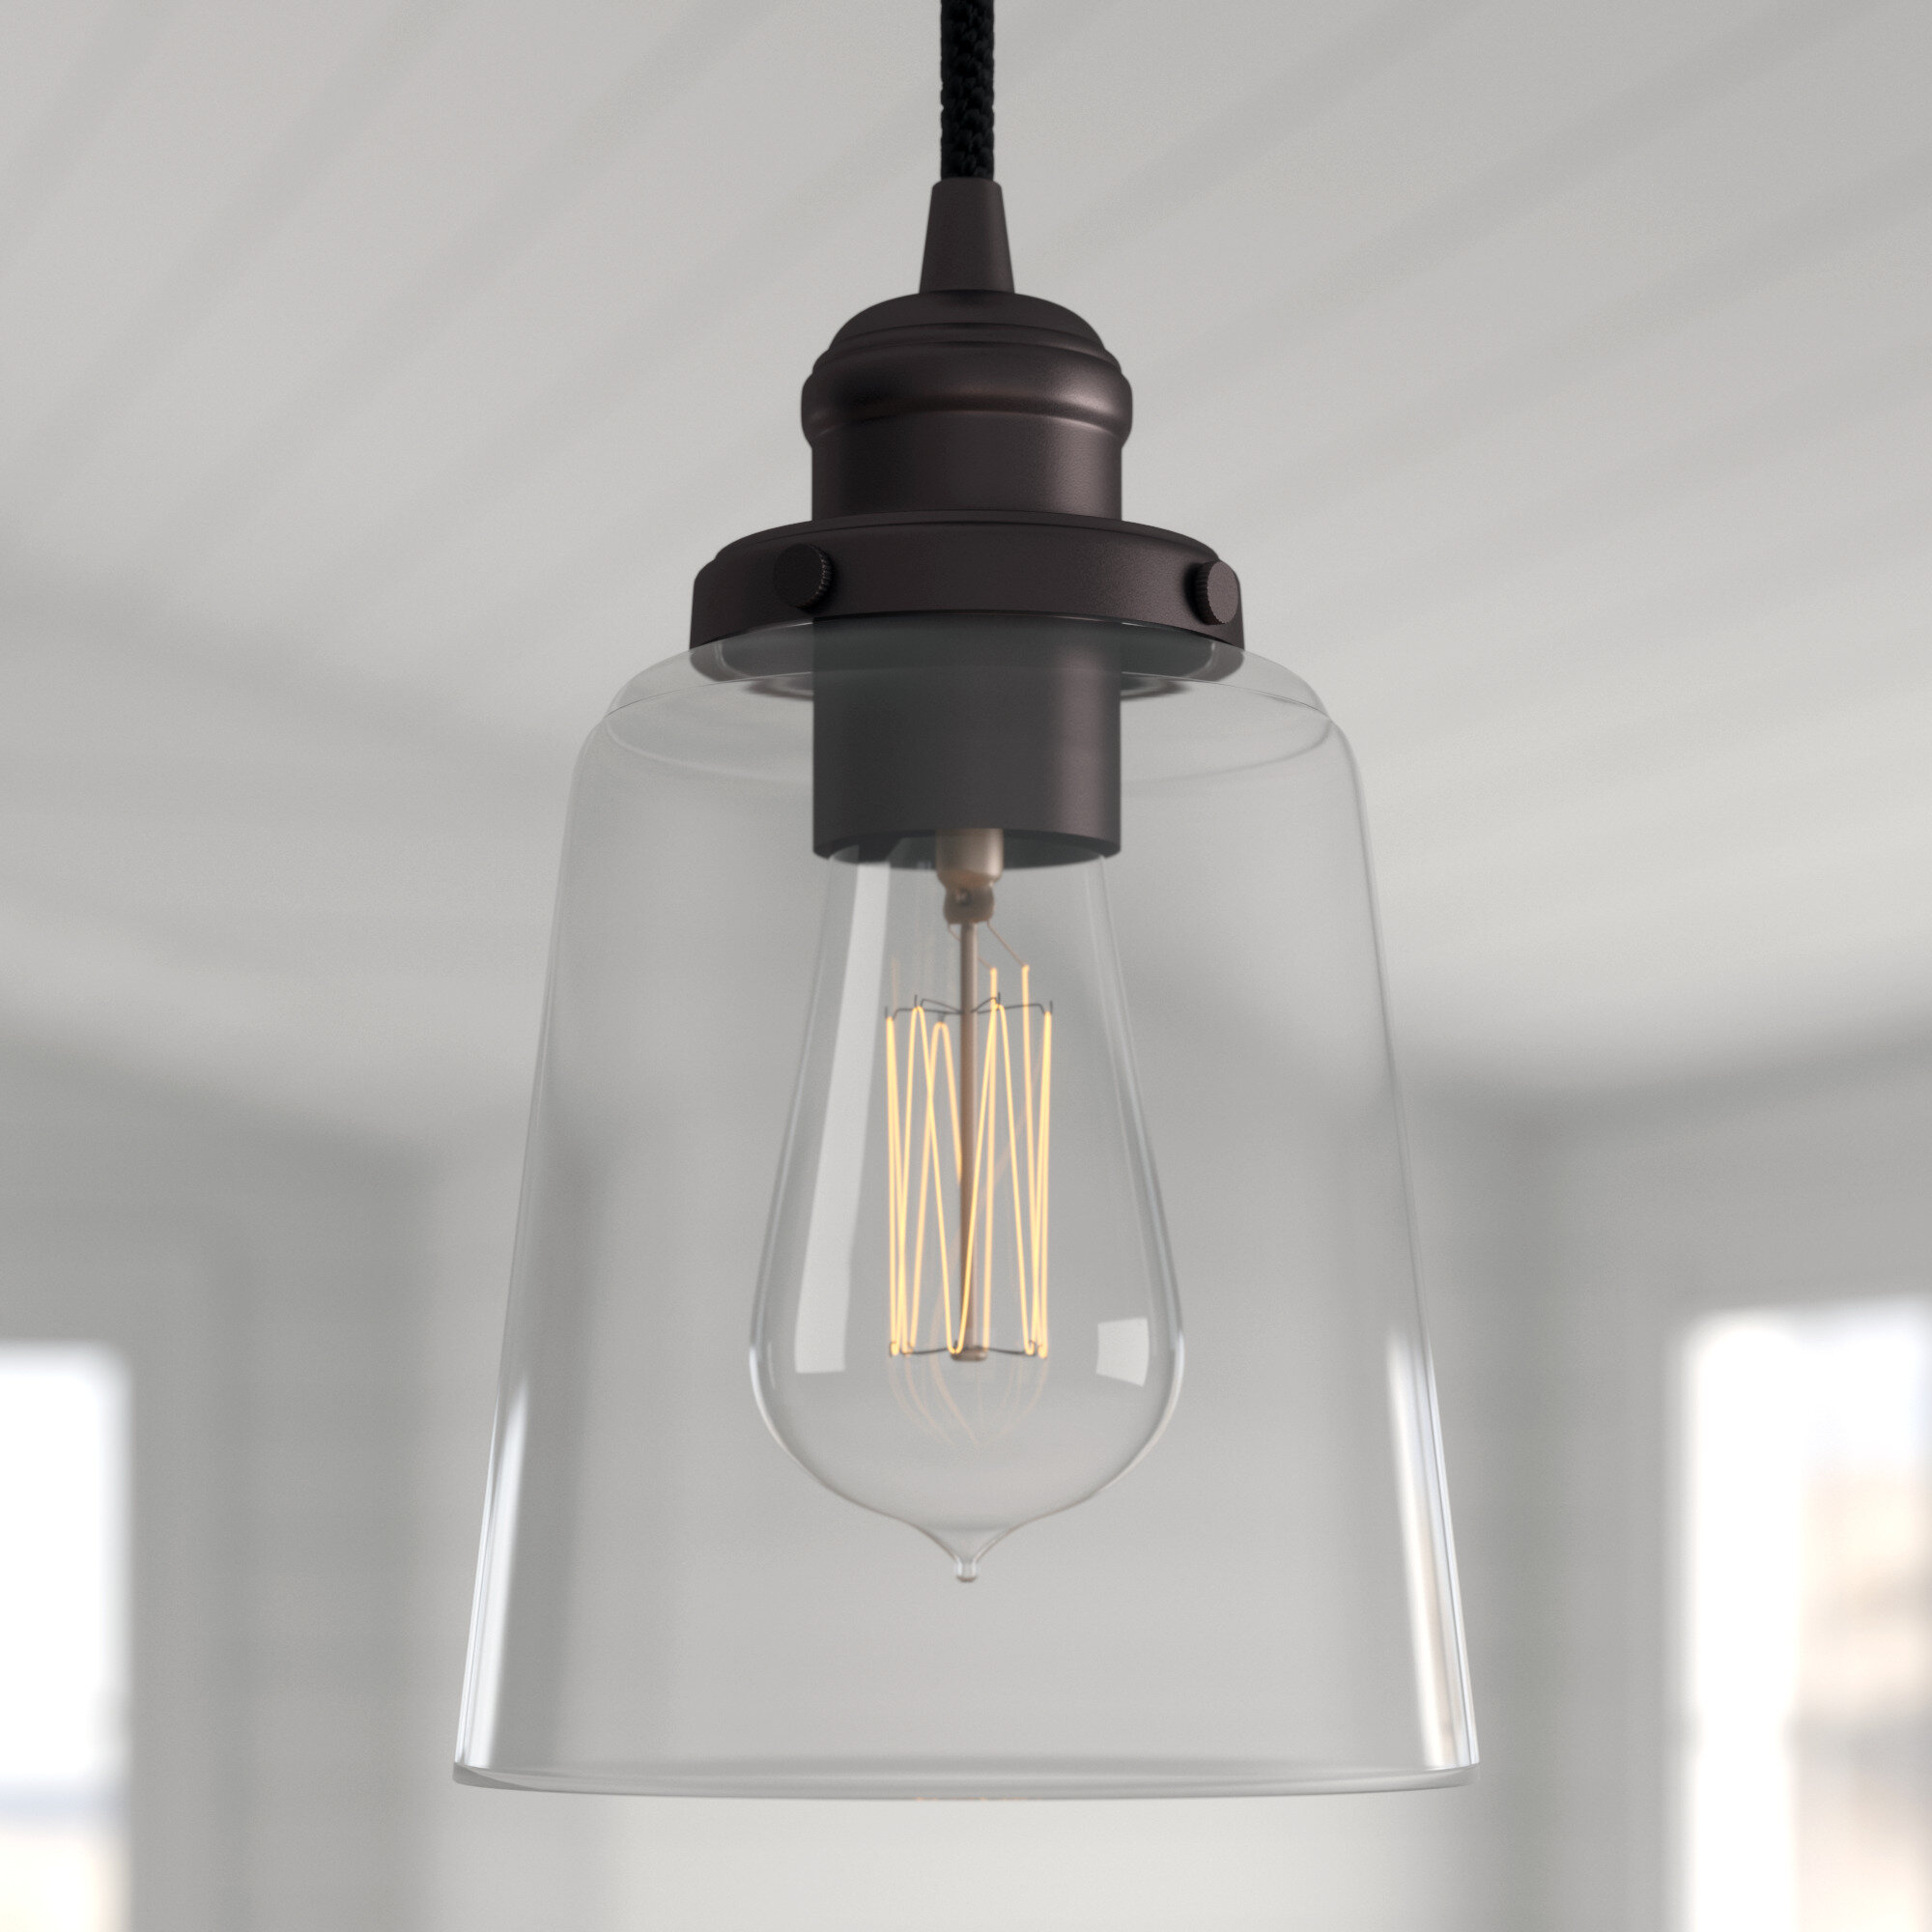 1 Light Single Bell Pendant Throughout Houon 1 Light Cone Bell Pendants (Gallery 25 of 30)